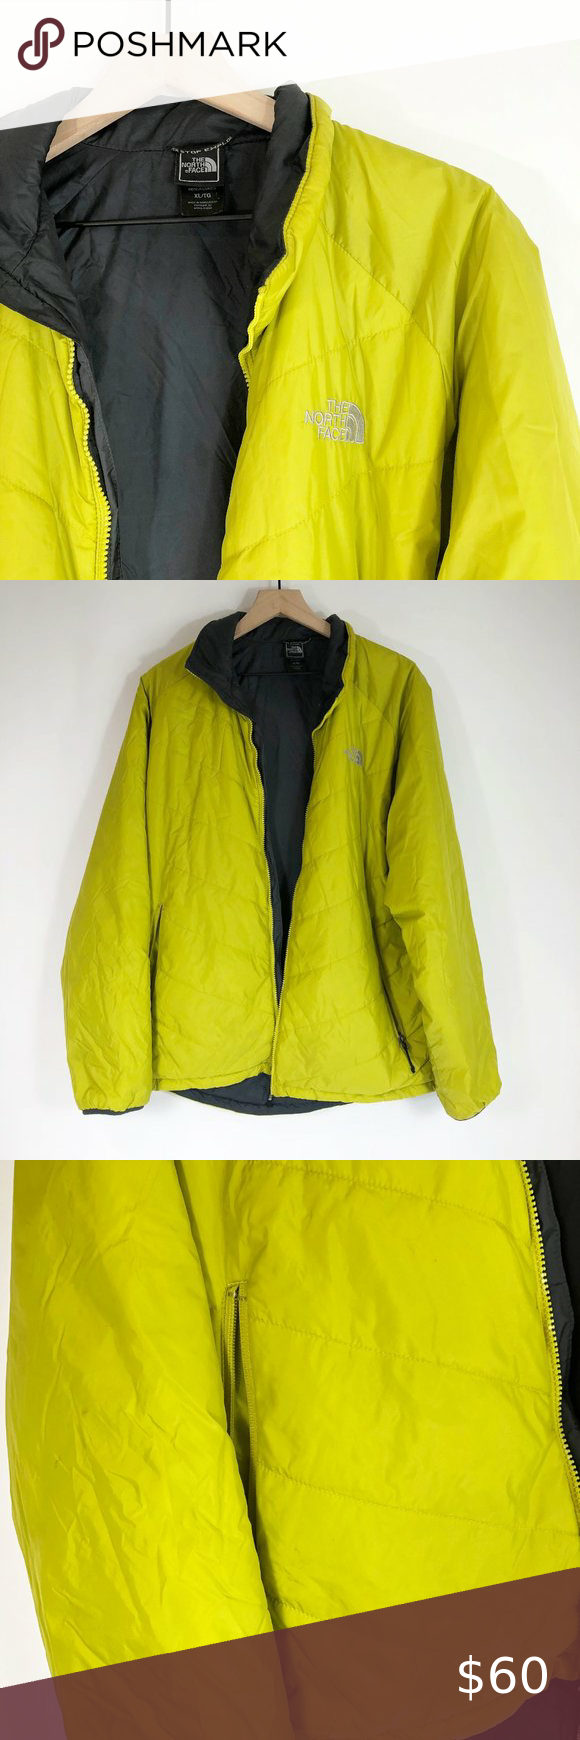 The North Face Insulated Lime Green Jacket Xl Green Jacket North Face Jacket Jackets [ 1740 x 580 Pixel ]